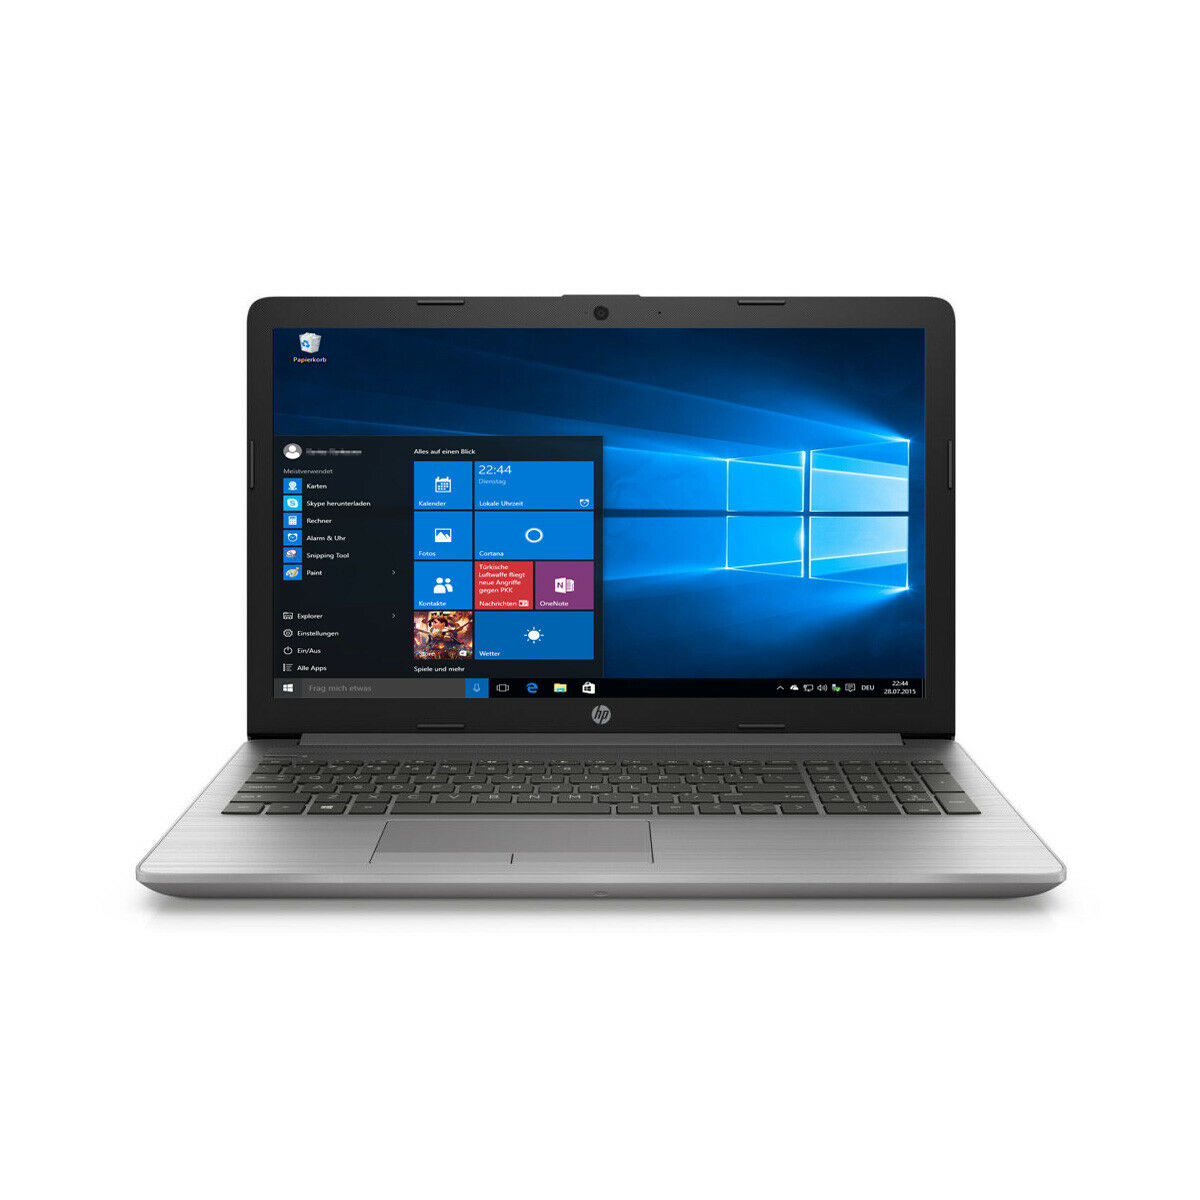 Notebook HP 250 G7 Intel Dual Core 2,6GHz 4GB - 128GB SSD Windows 10 Intel HD